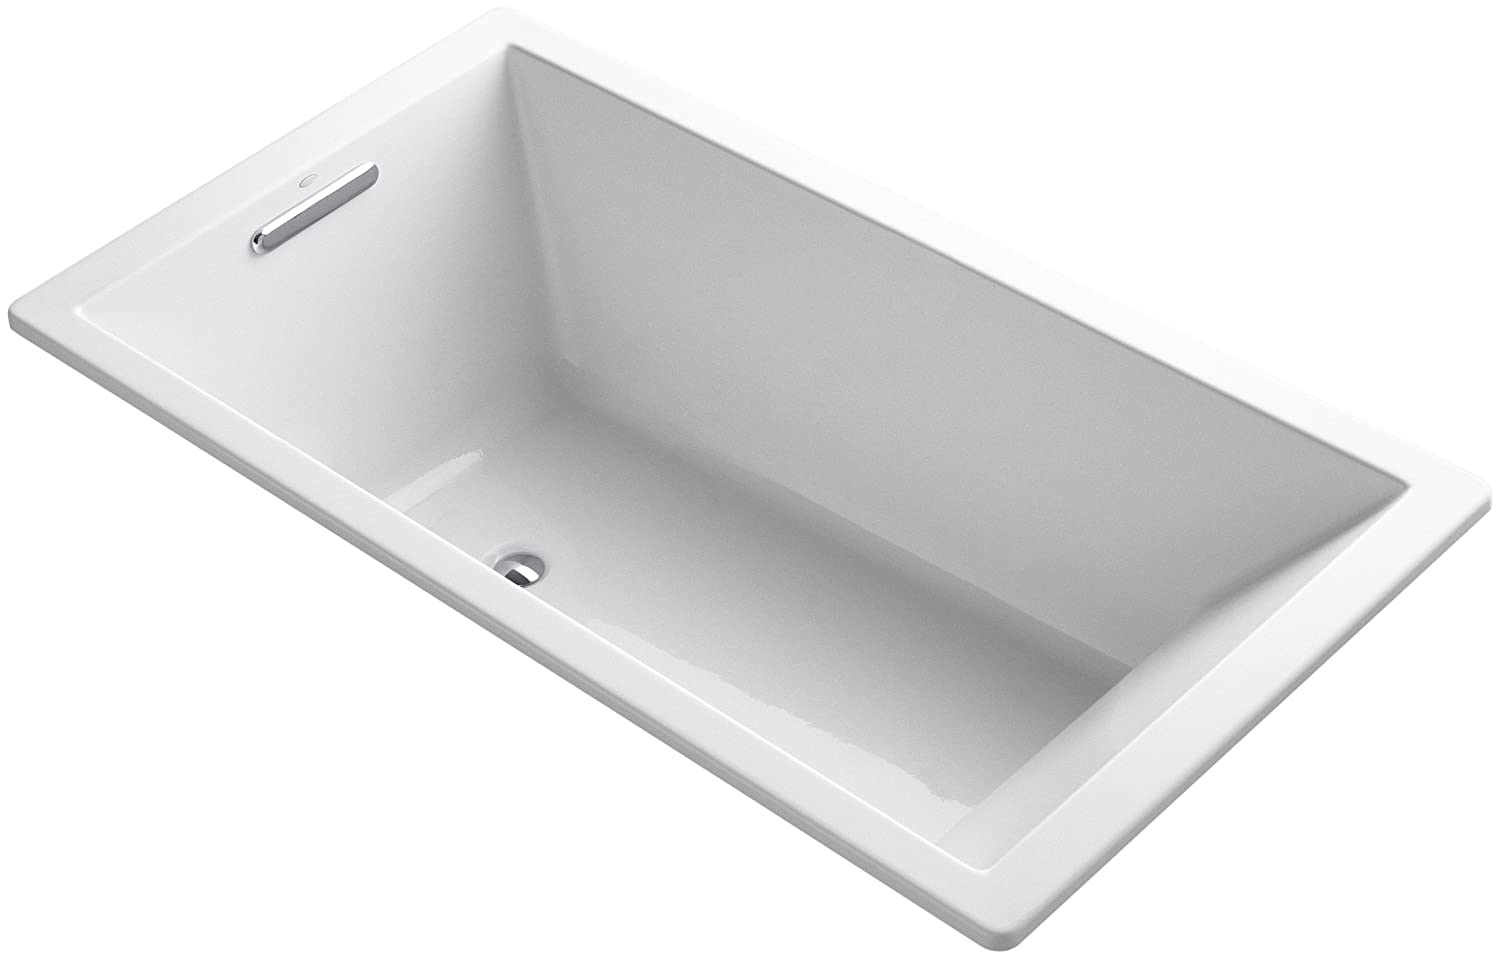 KOHLER 1136-0 Underscore Rectangle Bathtub, 66 5.5 , White